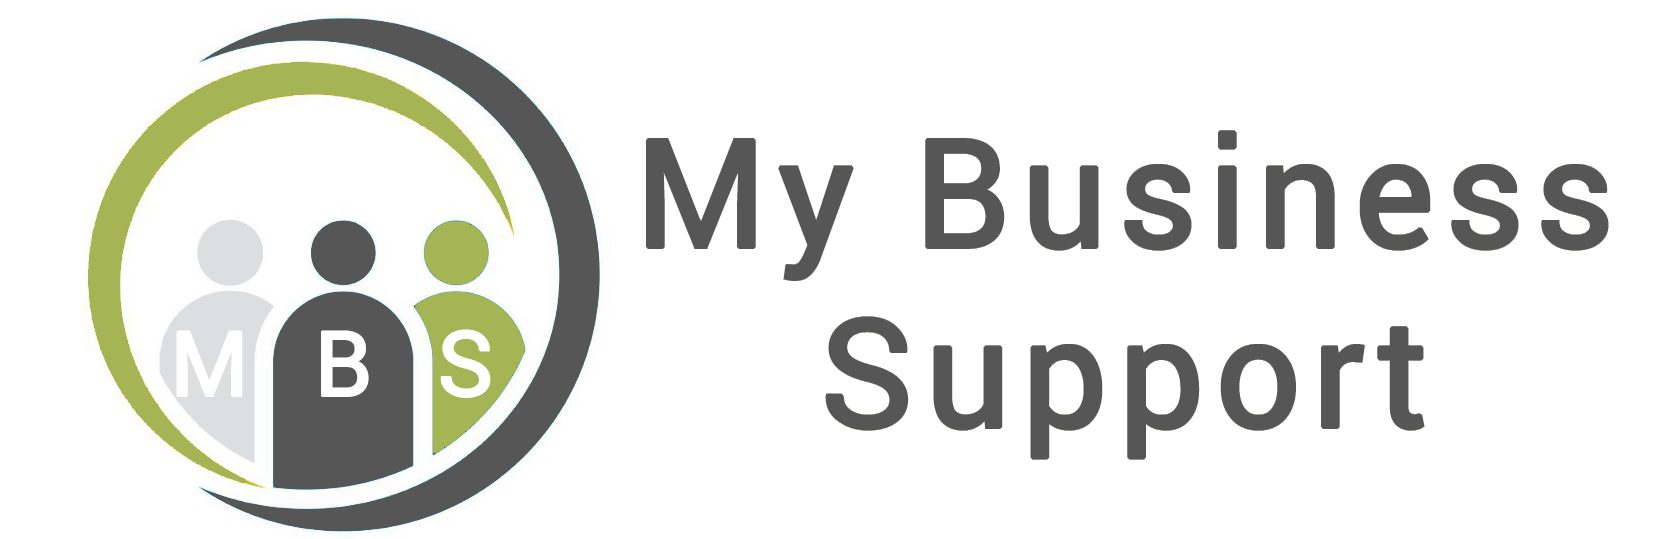 My Business Support